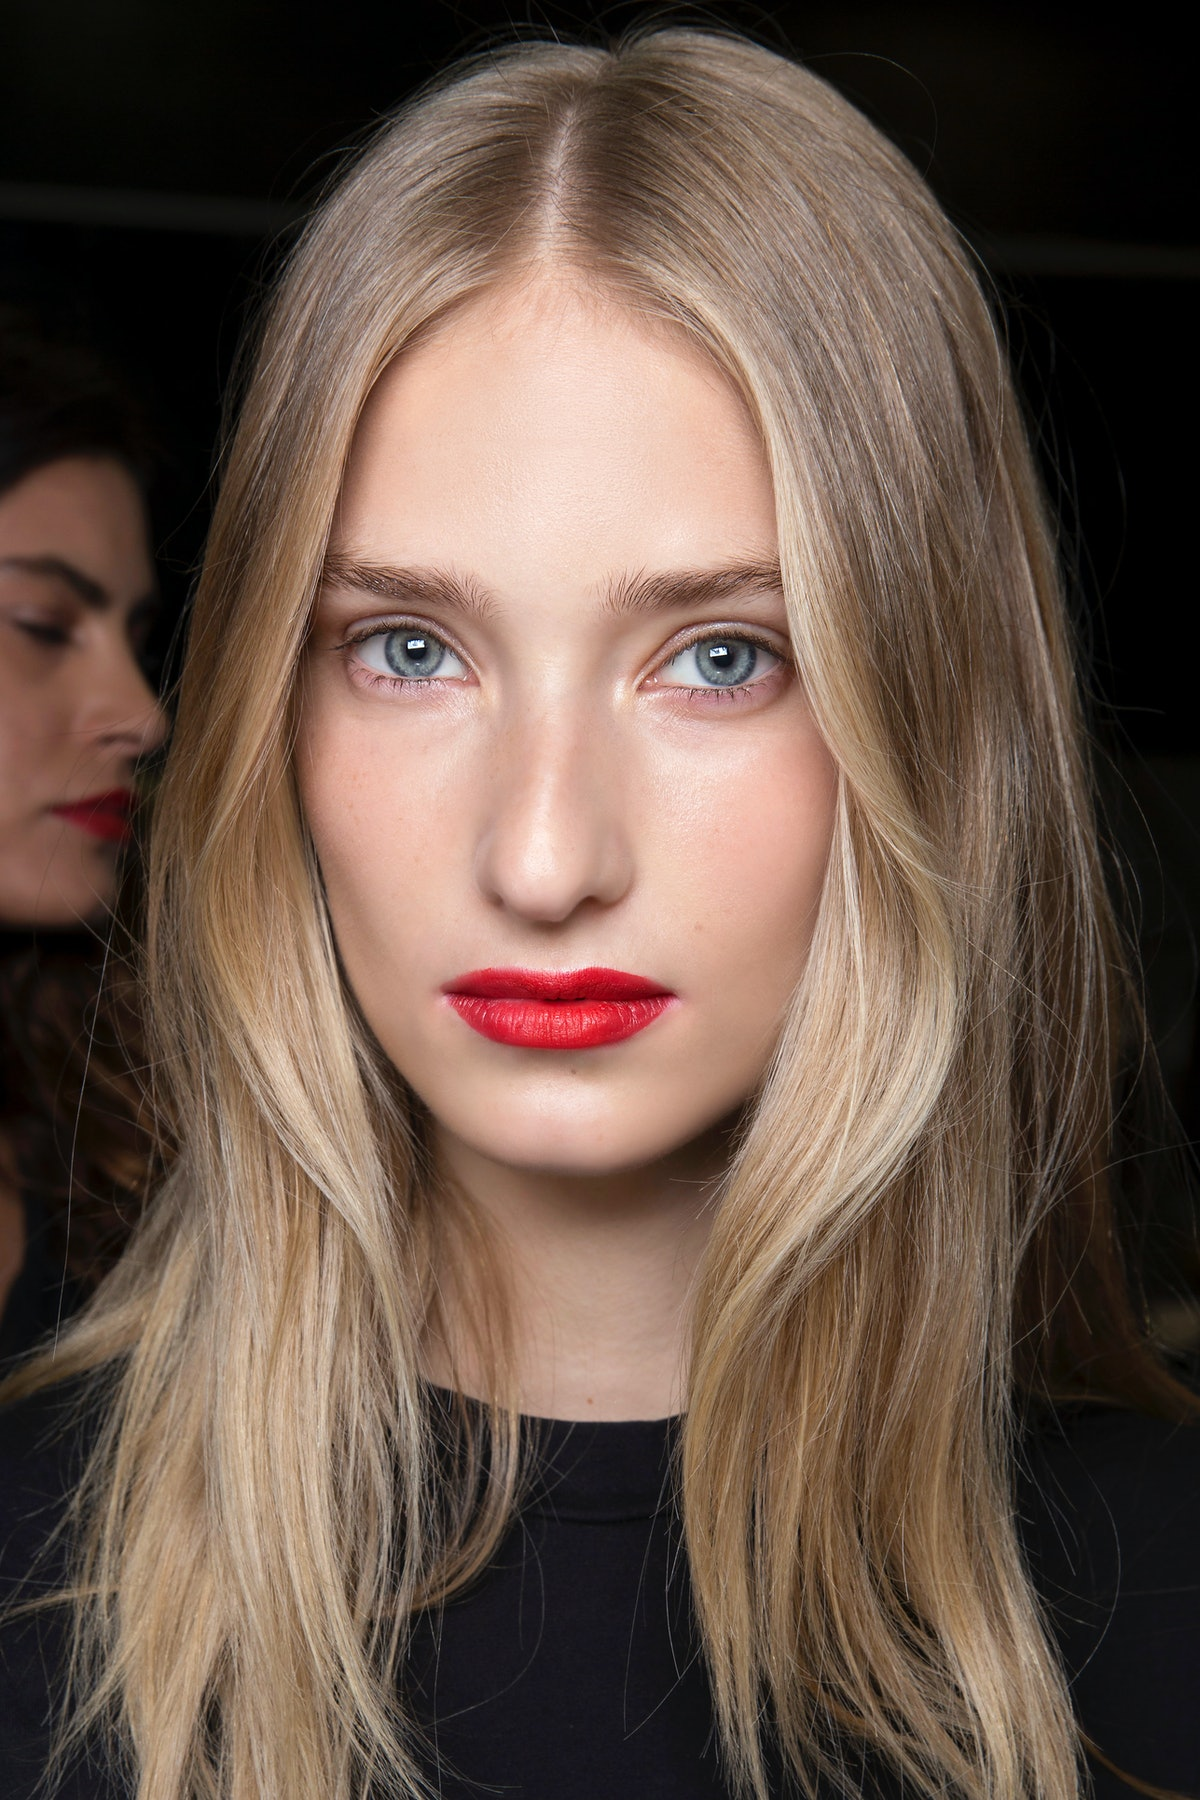 10 Blonde Hair Maintenance Products That Help When I Can't See My Colorist